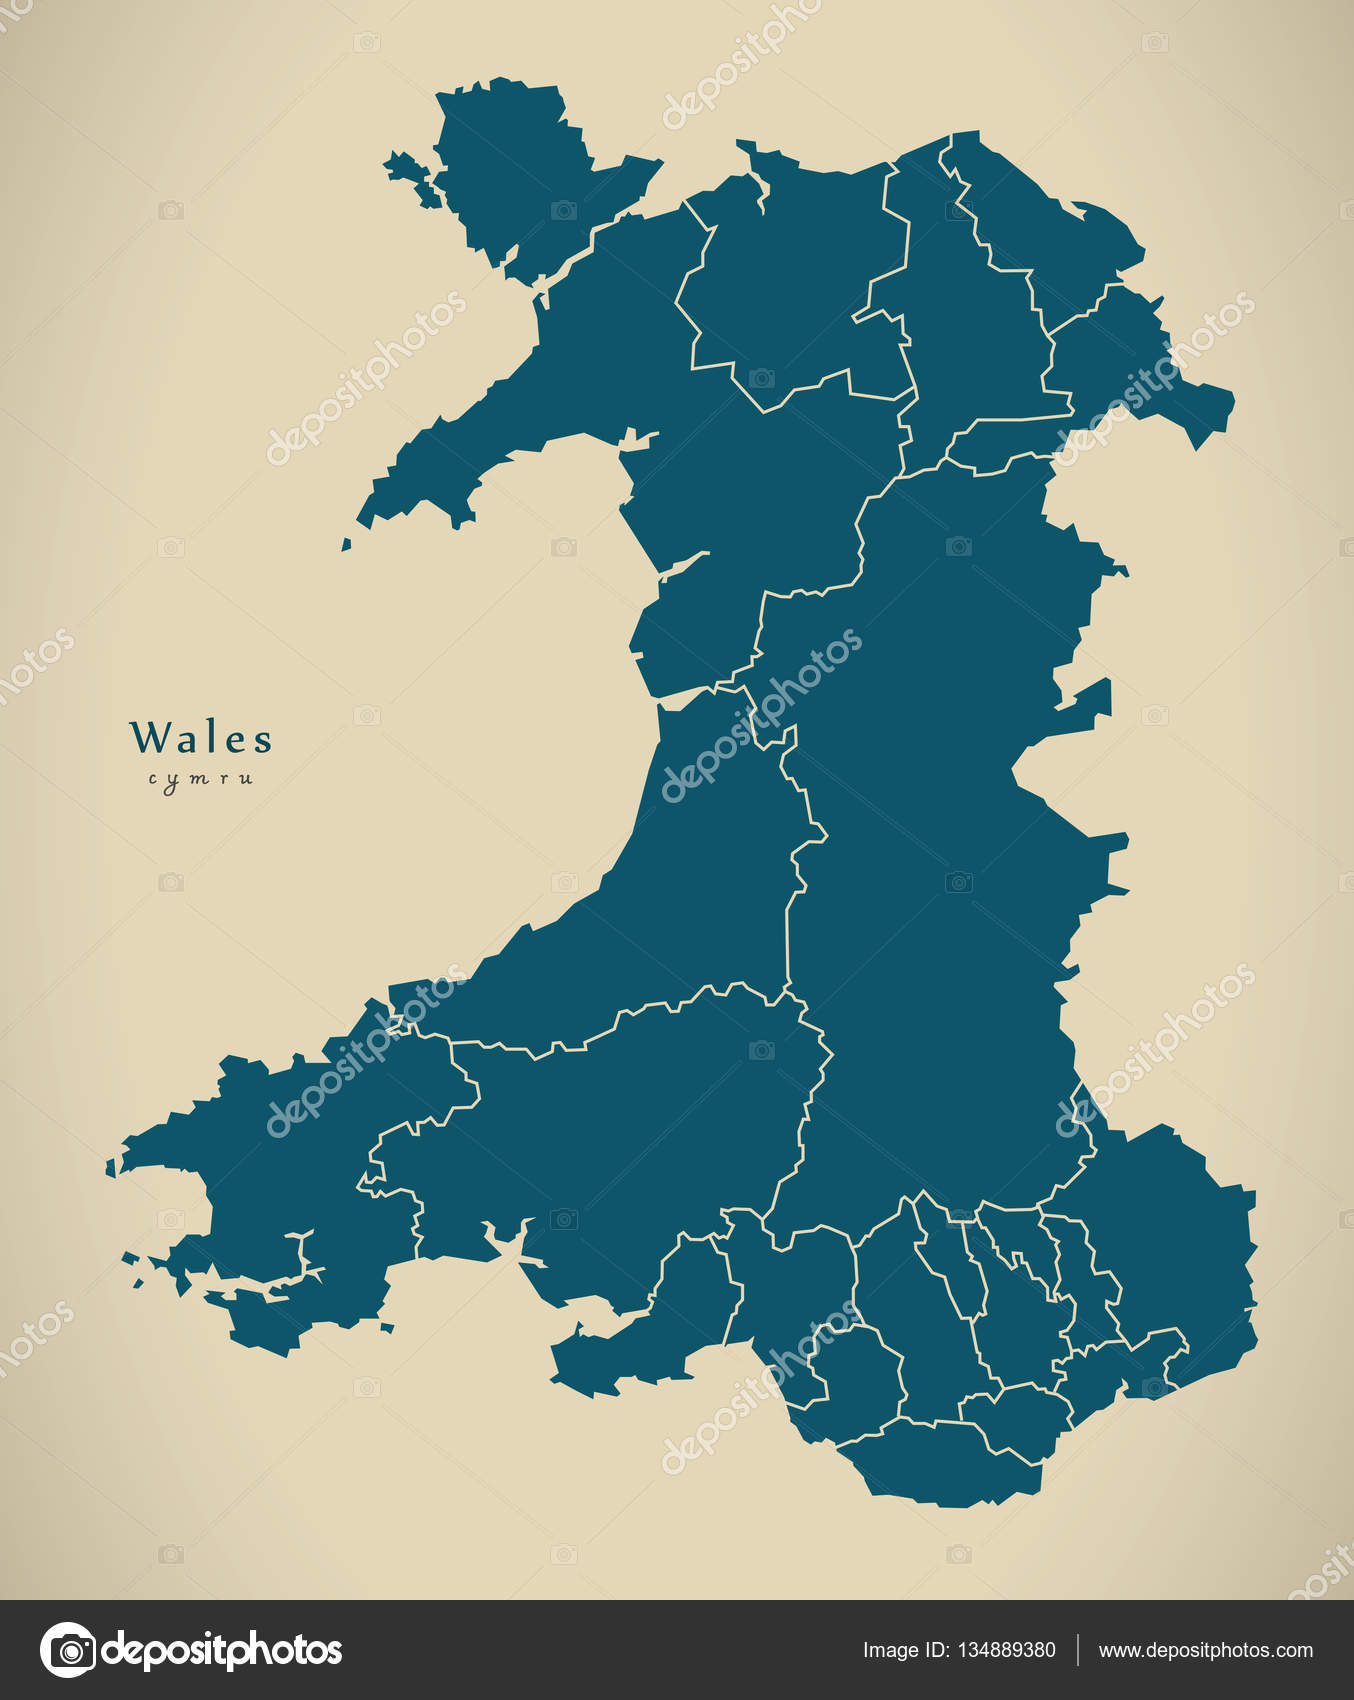 Modern map wales with regions uk fotos de stock ingomenhard modern map wales with regions uk fotos de stock gumiabroncs Image collections